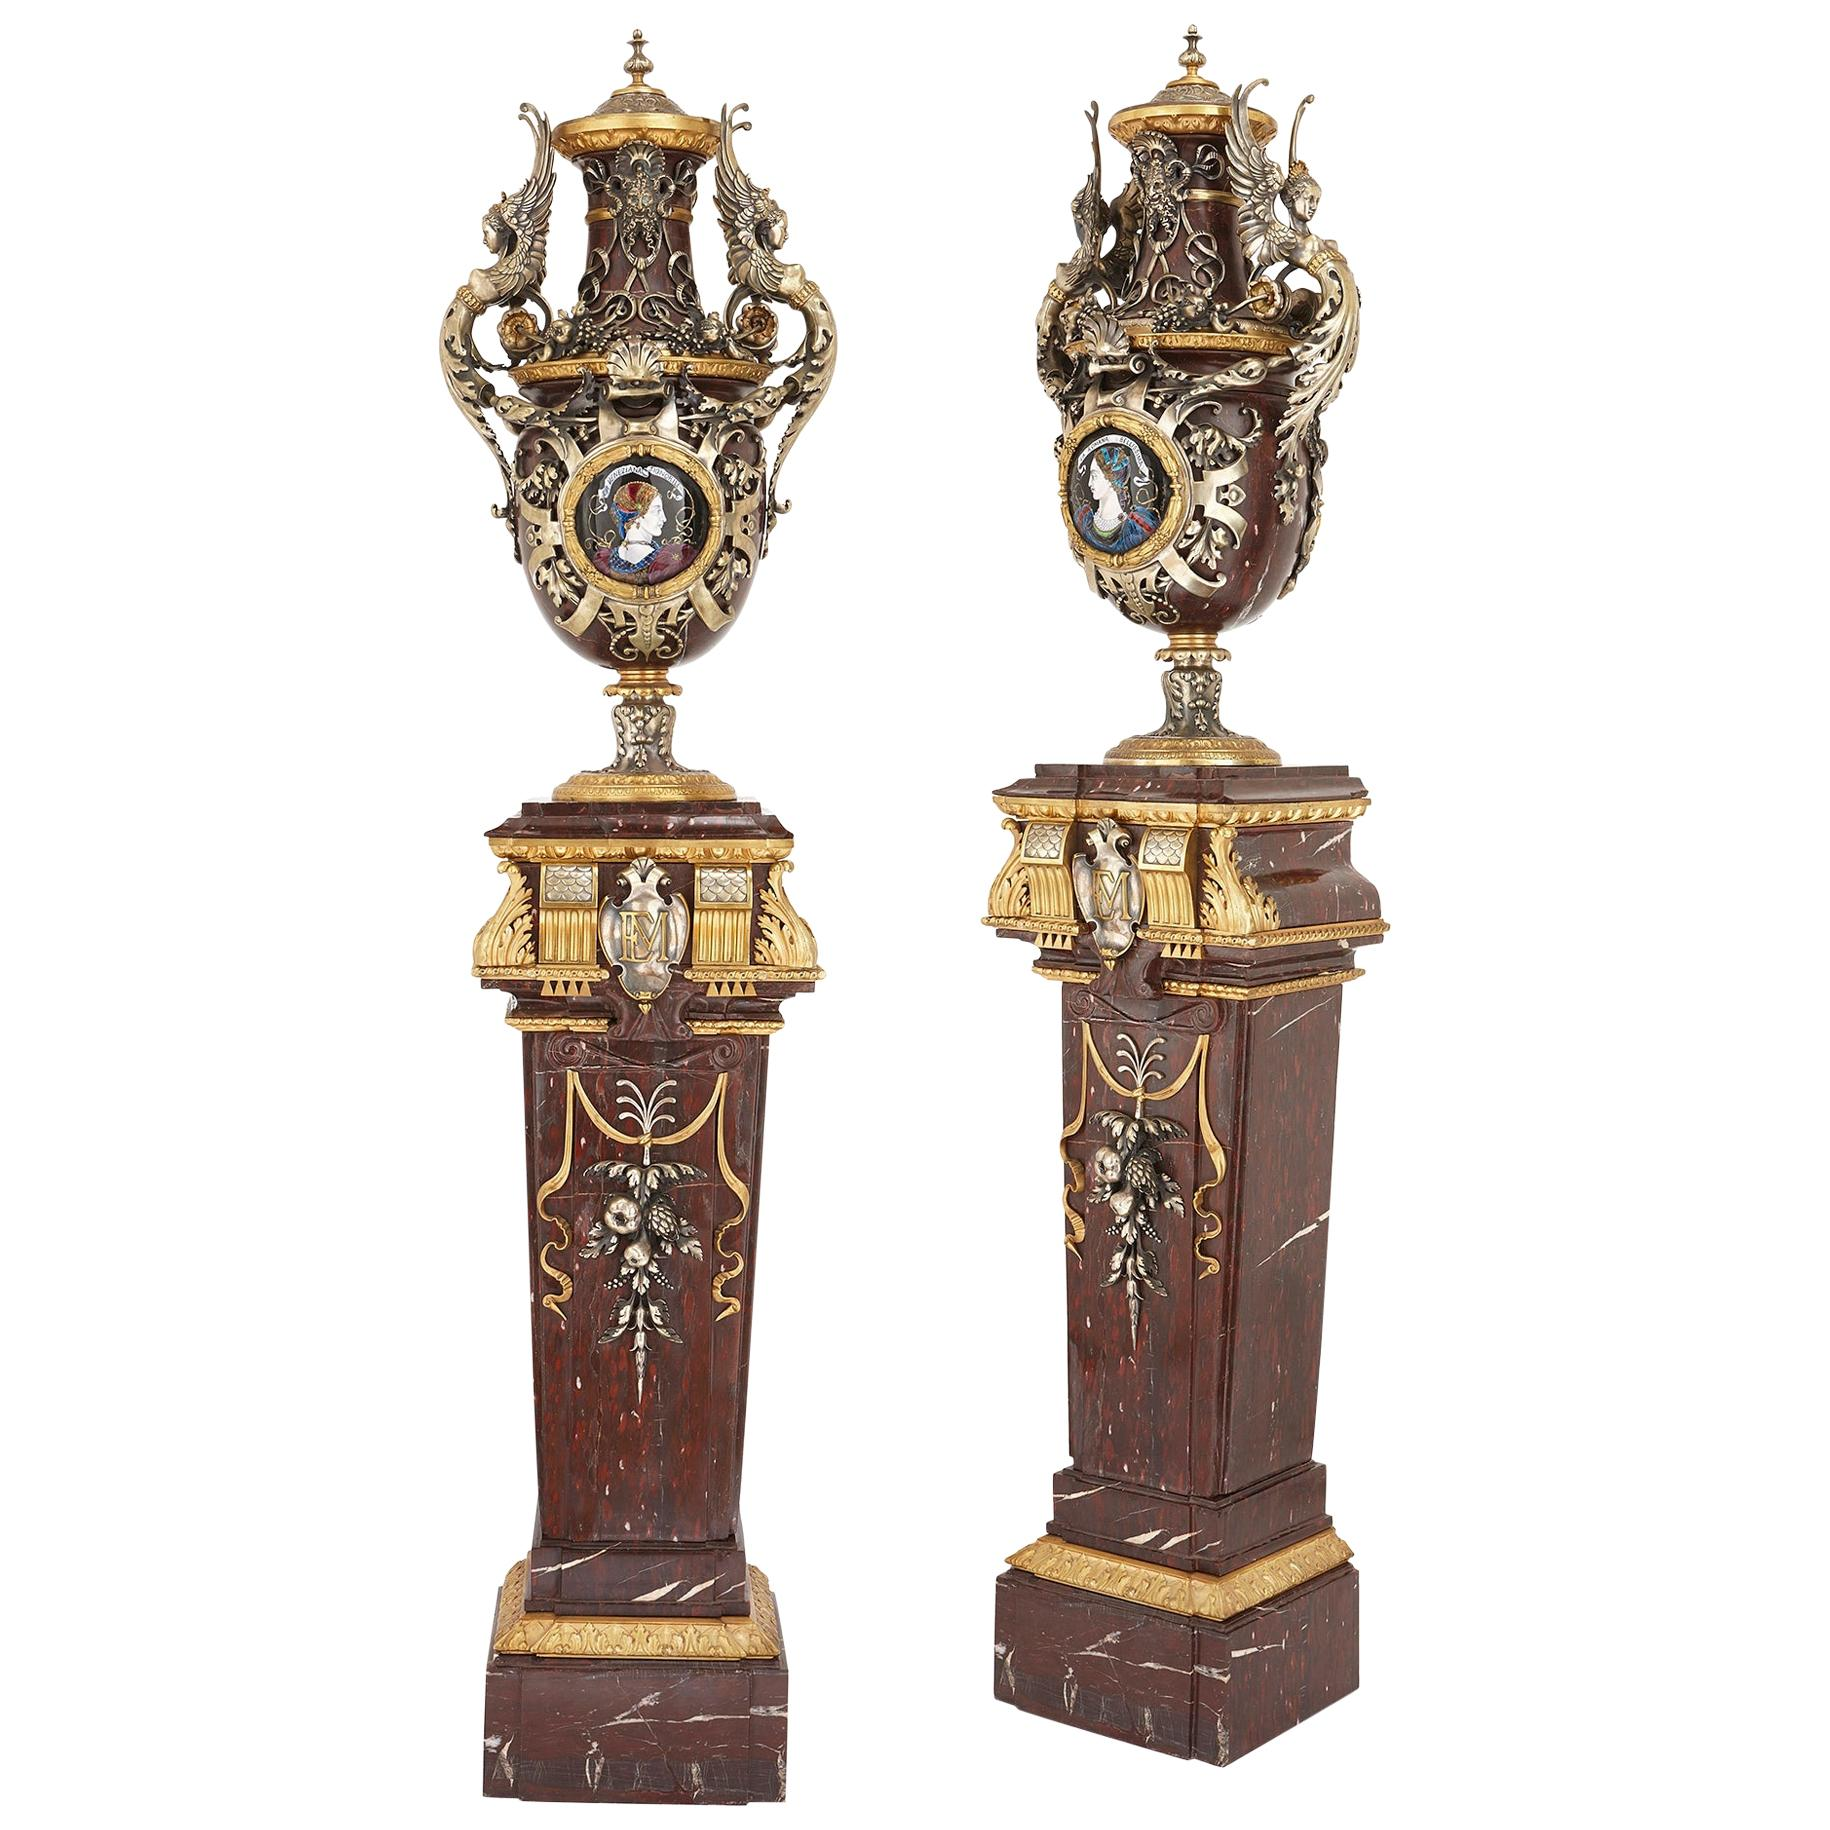 Pair of Monumental Napoleon III Period Vases by Barbedienne, Sévin, and Popelin